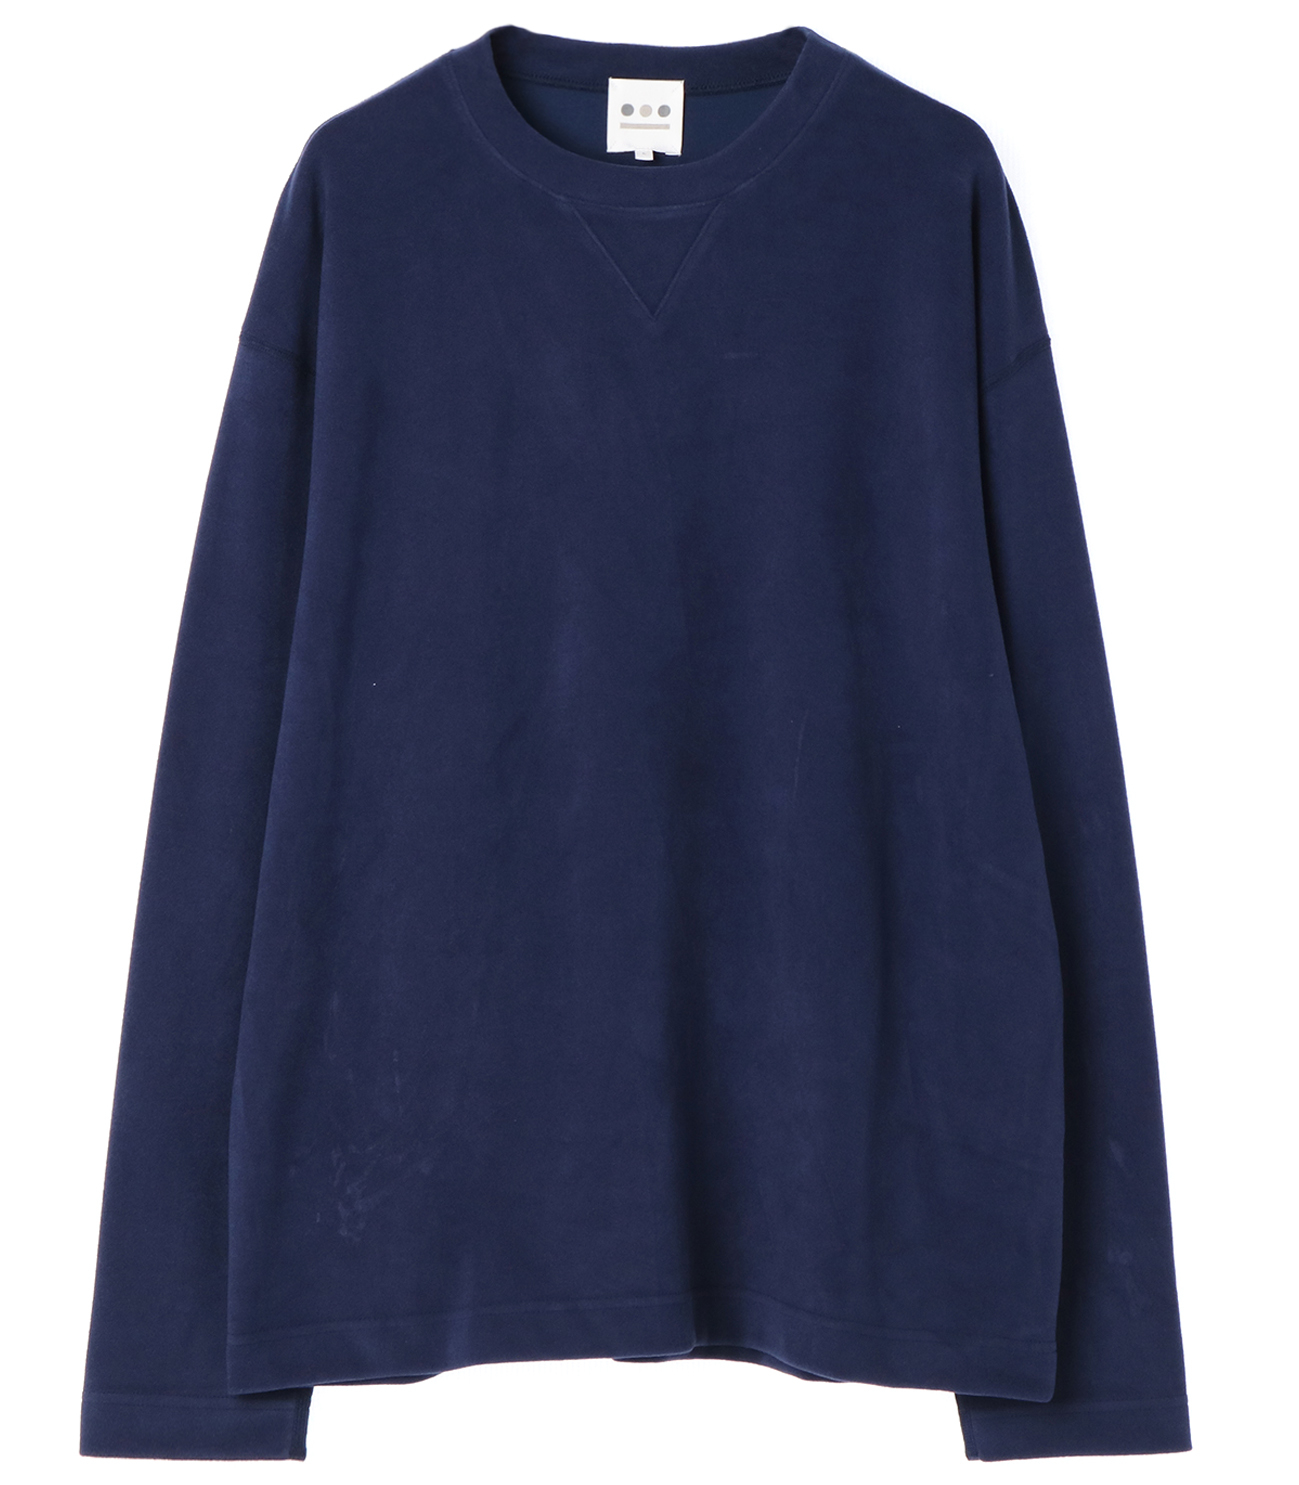 inter lock l/s crewneck po 詳細画像 ink blue 1